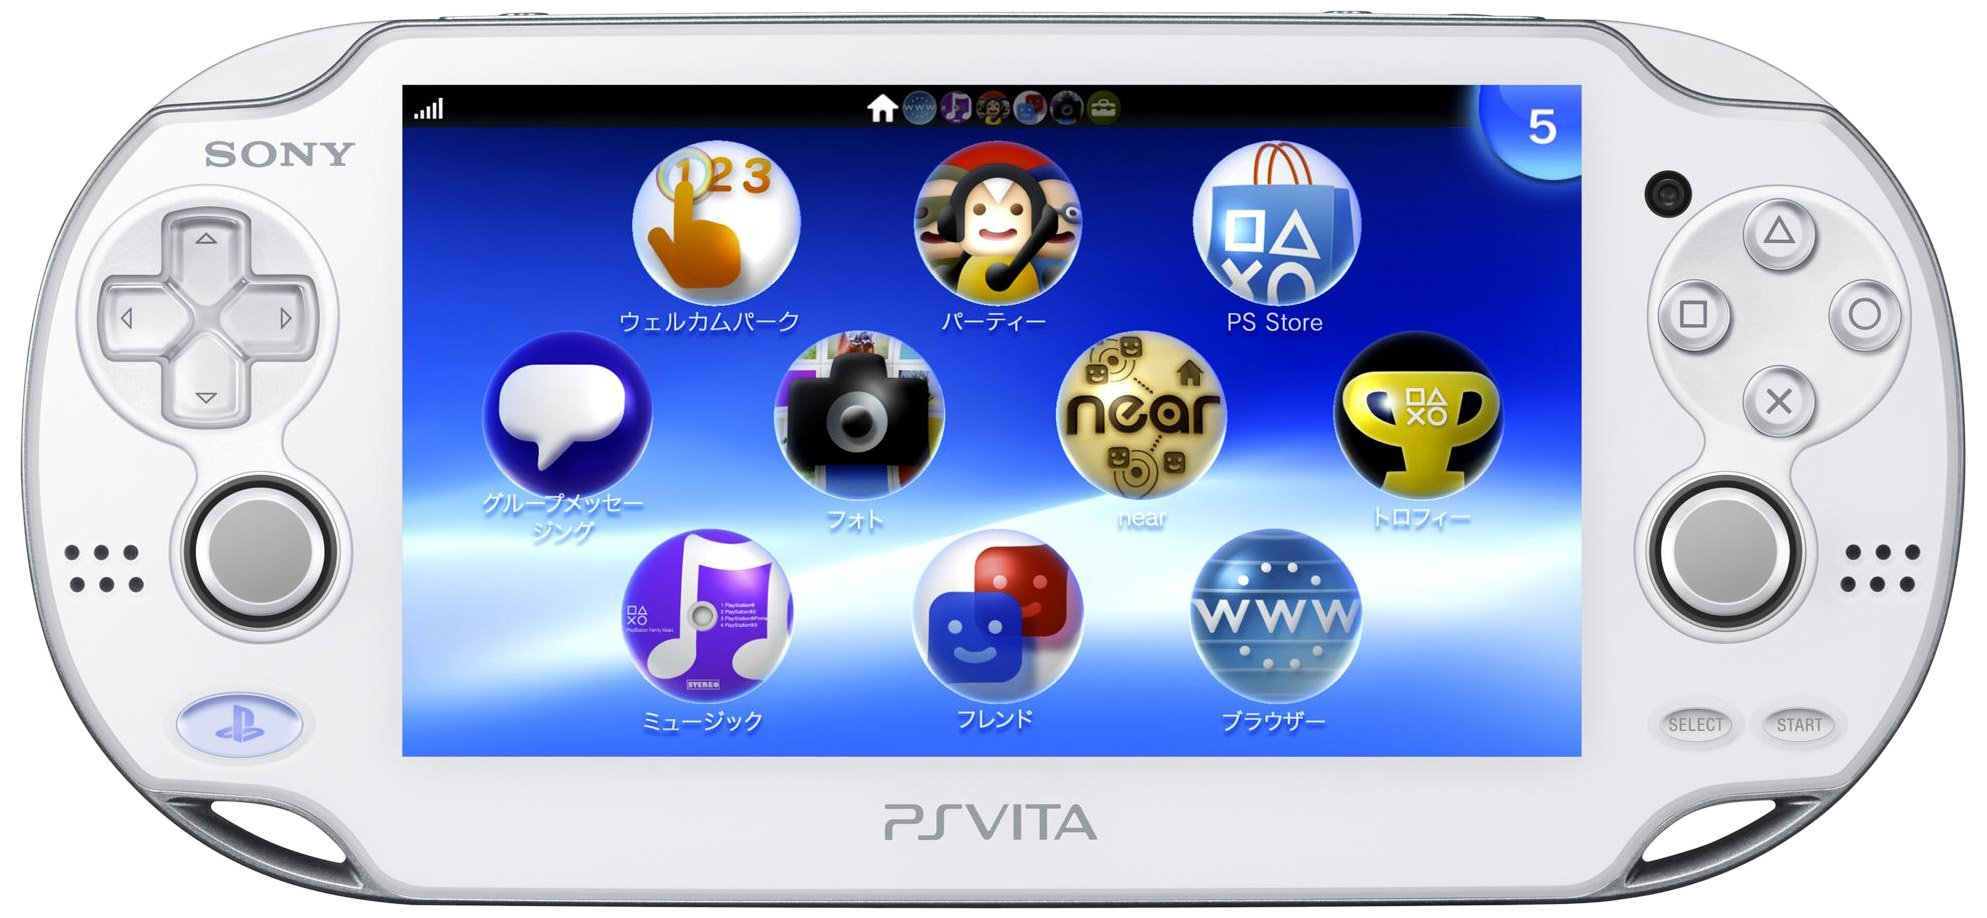 PlayStation Vita (PlayStation vita) Wi-Fi model Crystal White (PCH-1000 ZA02)【japan import】